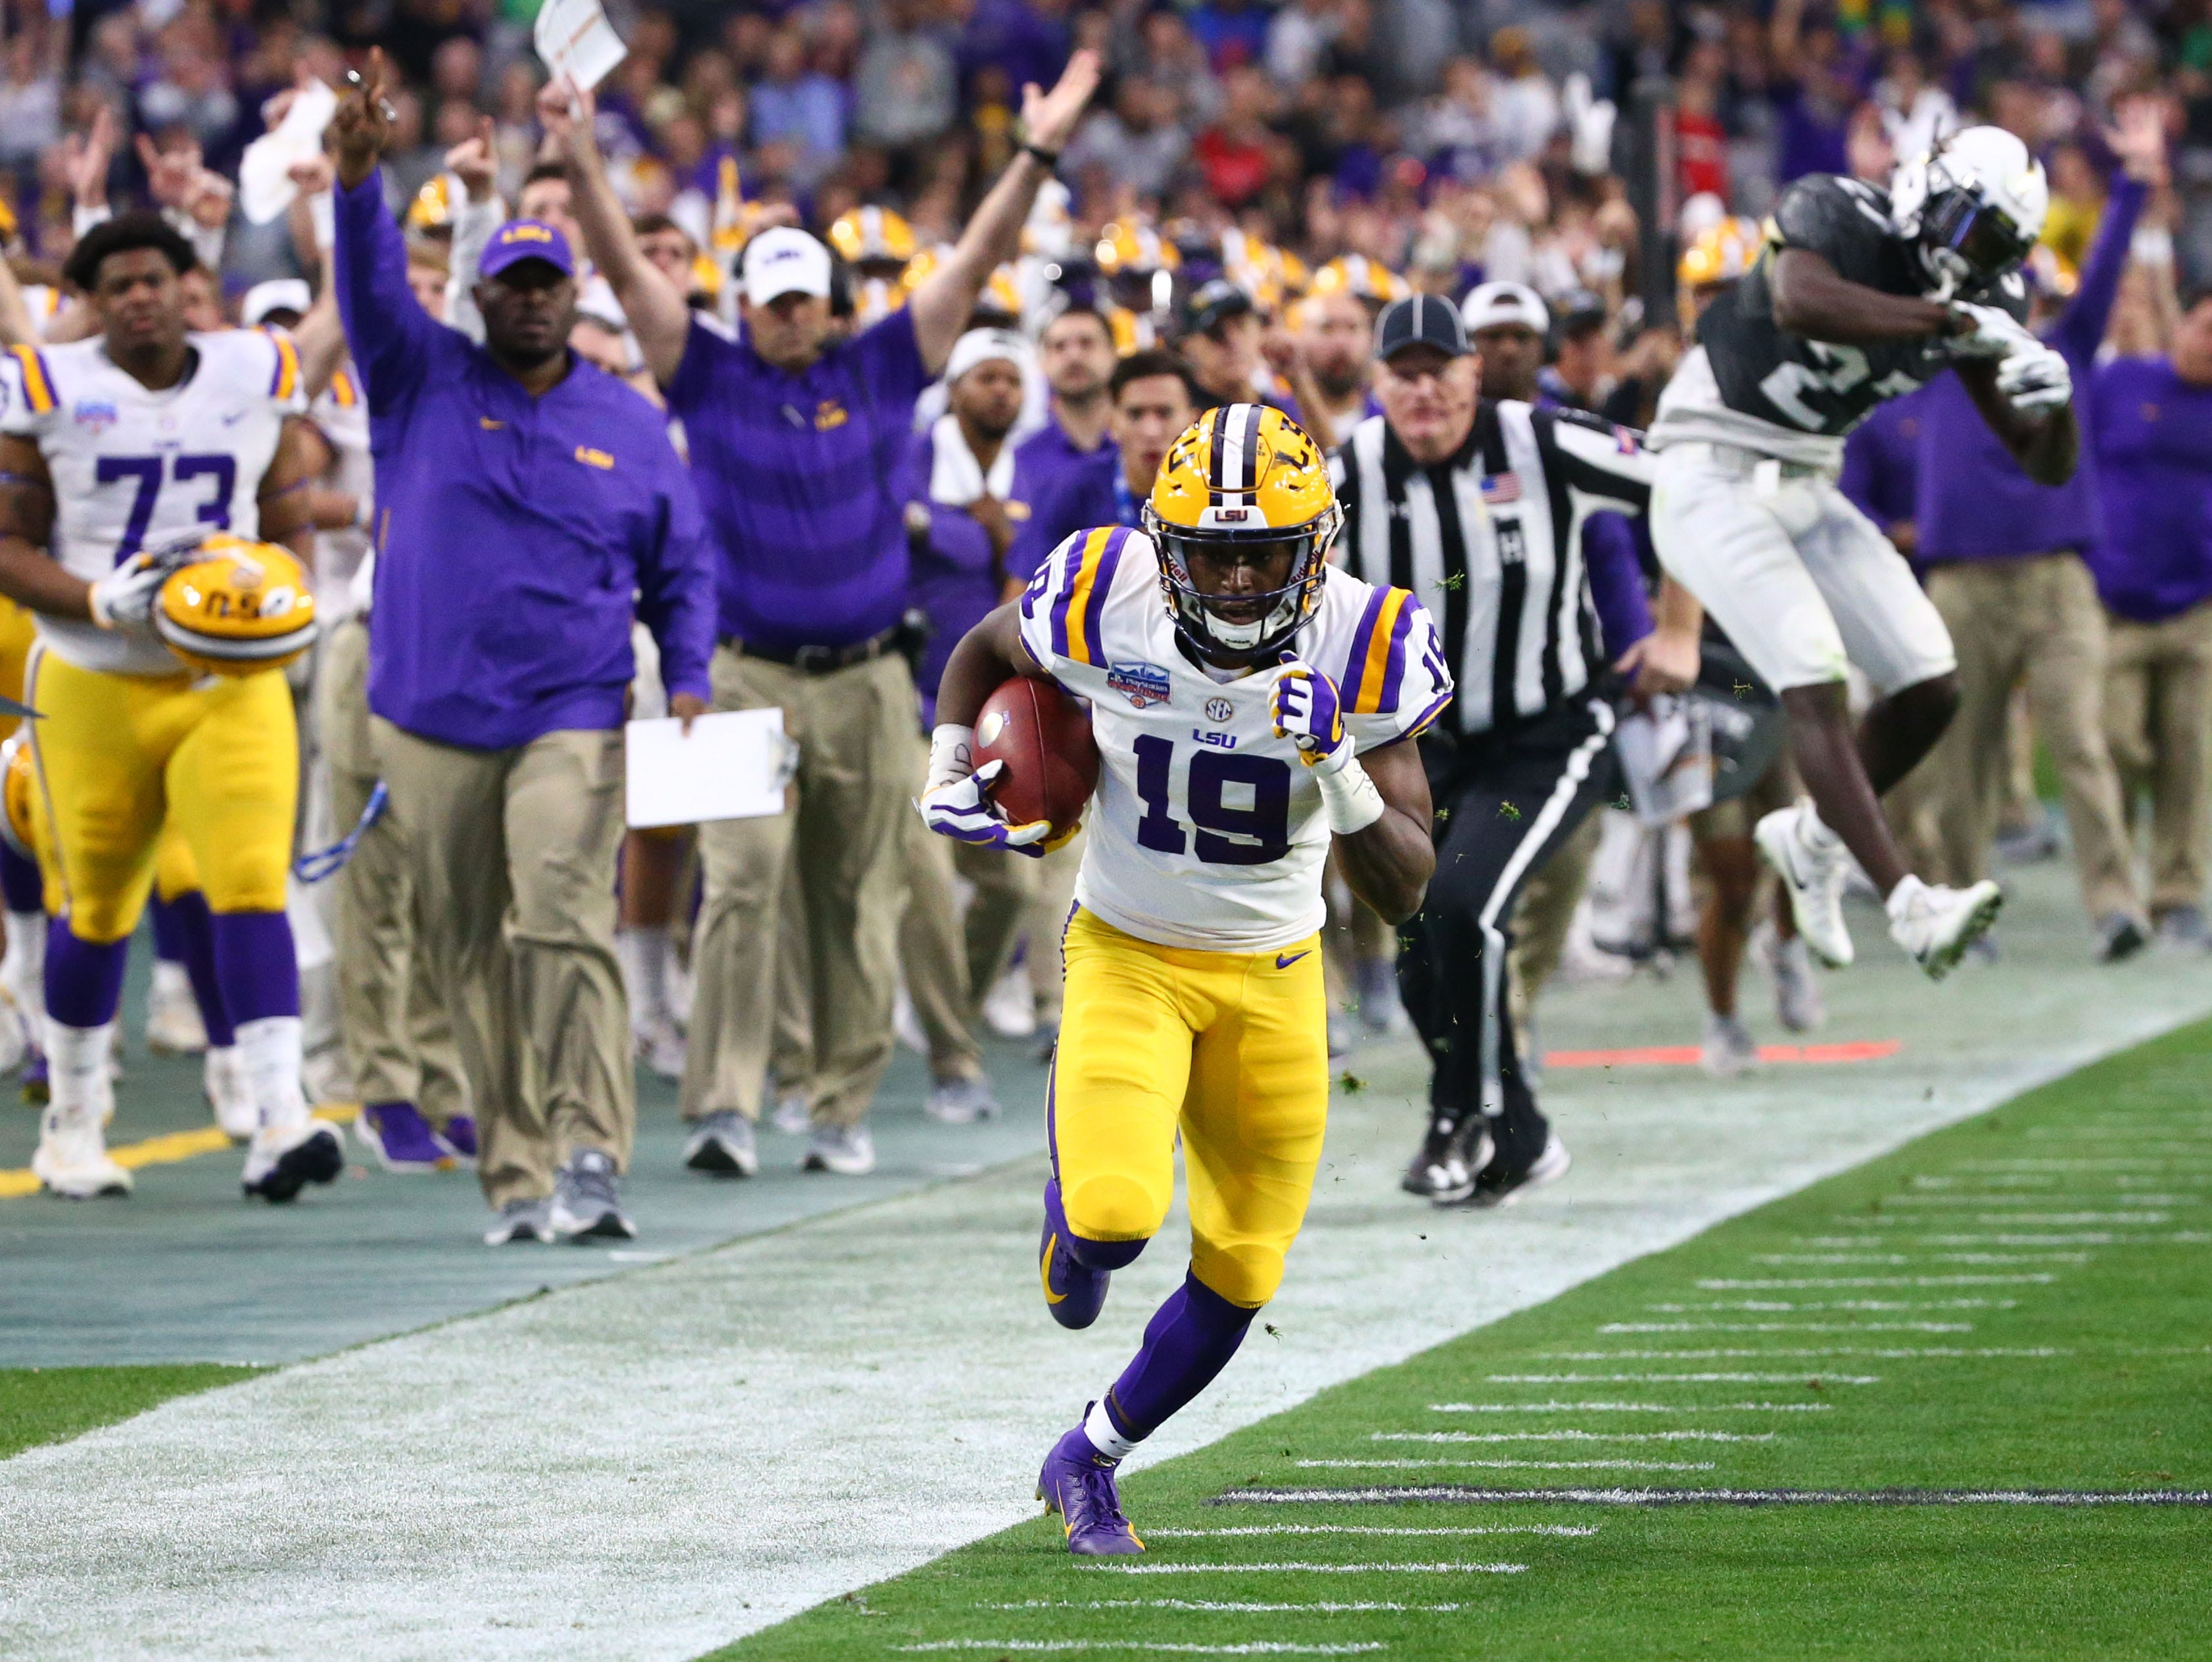 LSU Tigers wide receiver Derrick Dillon (19) runs for a touchdown against the UCF Knight in the first half at the Fiesta Bowl on Jan. 1 at State Farm Stadium.